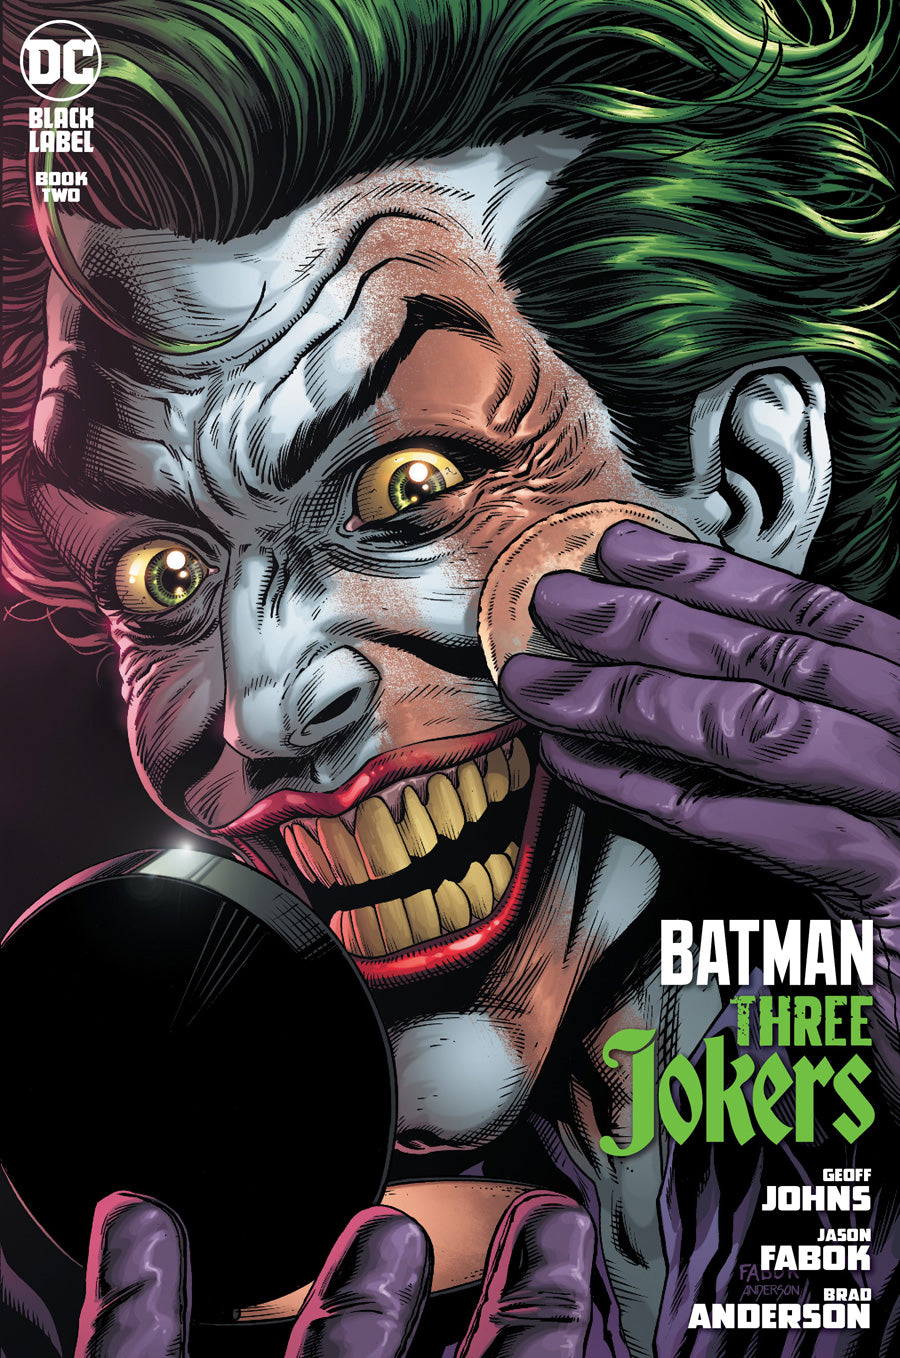 BATMAN THREE JOKERS #2 PREMIUM VARIANT F APPLYING MAKEUP